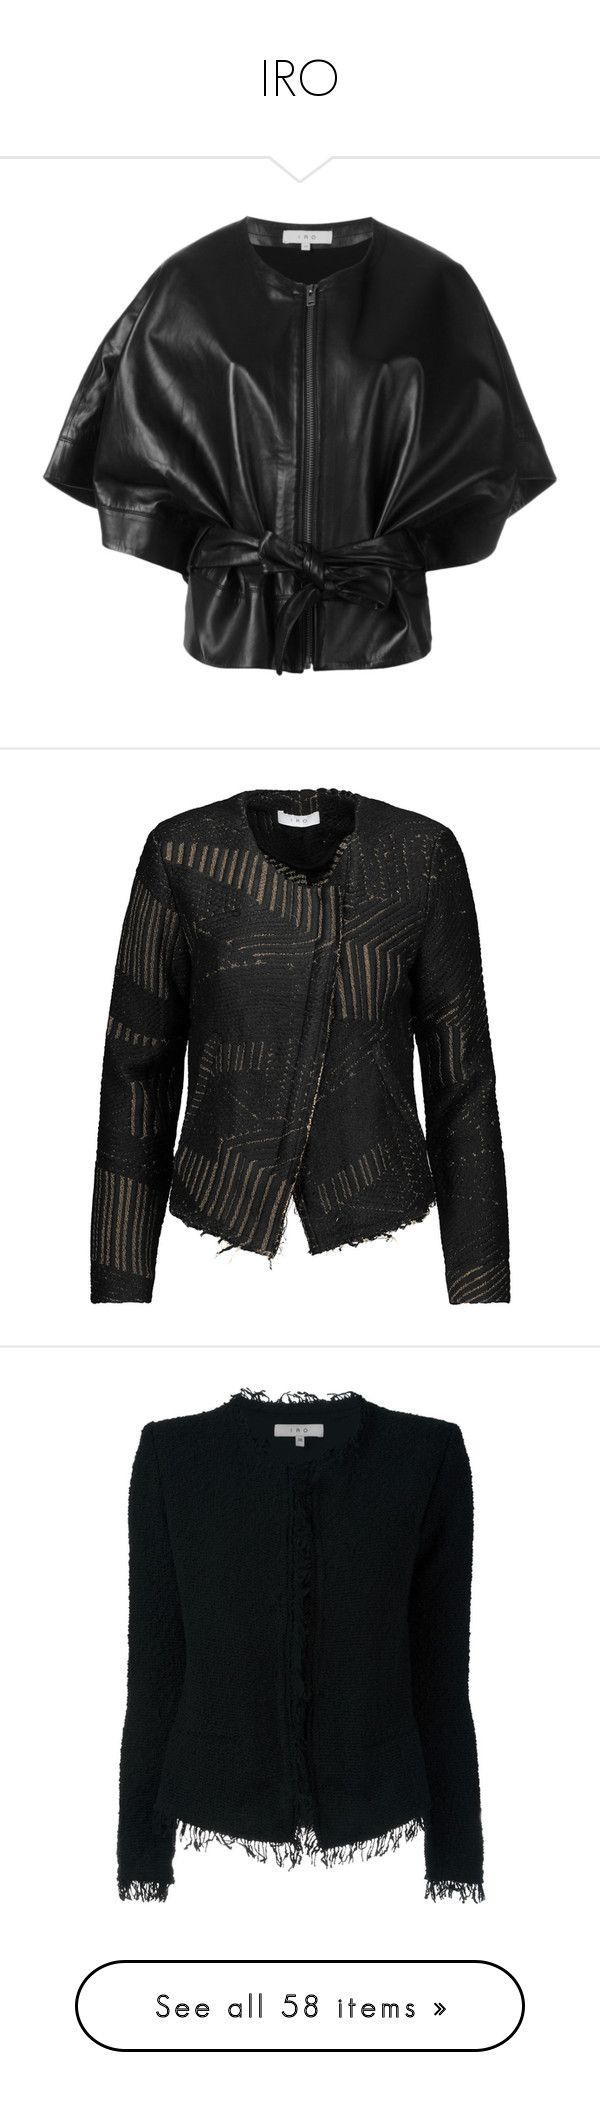 """""""IRO"""" by mari-sv ❤ liked on Polyvore featuring outerwear, jackets, black, genuine leather jackets, 100 leather jacket, iro jacket, leather jackets, real leather jackets, asymmetrical zipper jacket and asymmetrical zip jacket"""